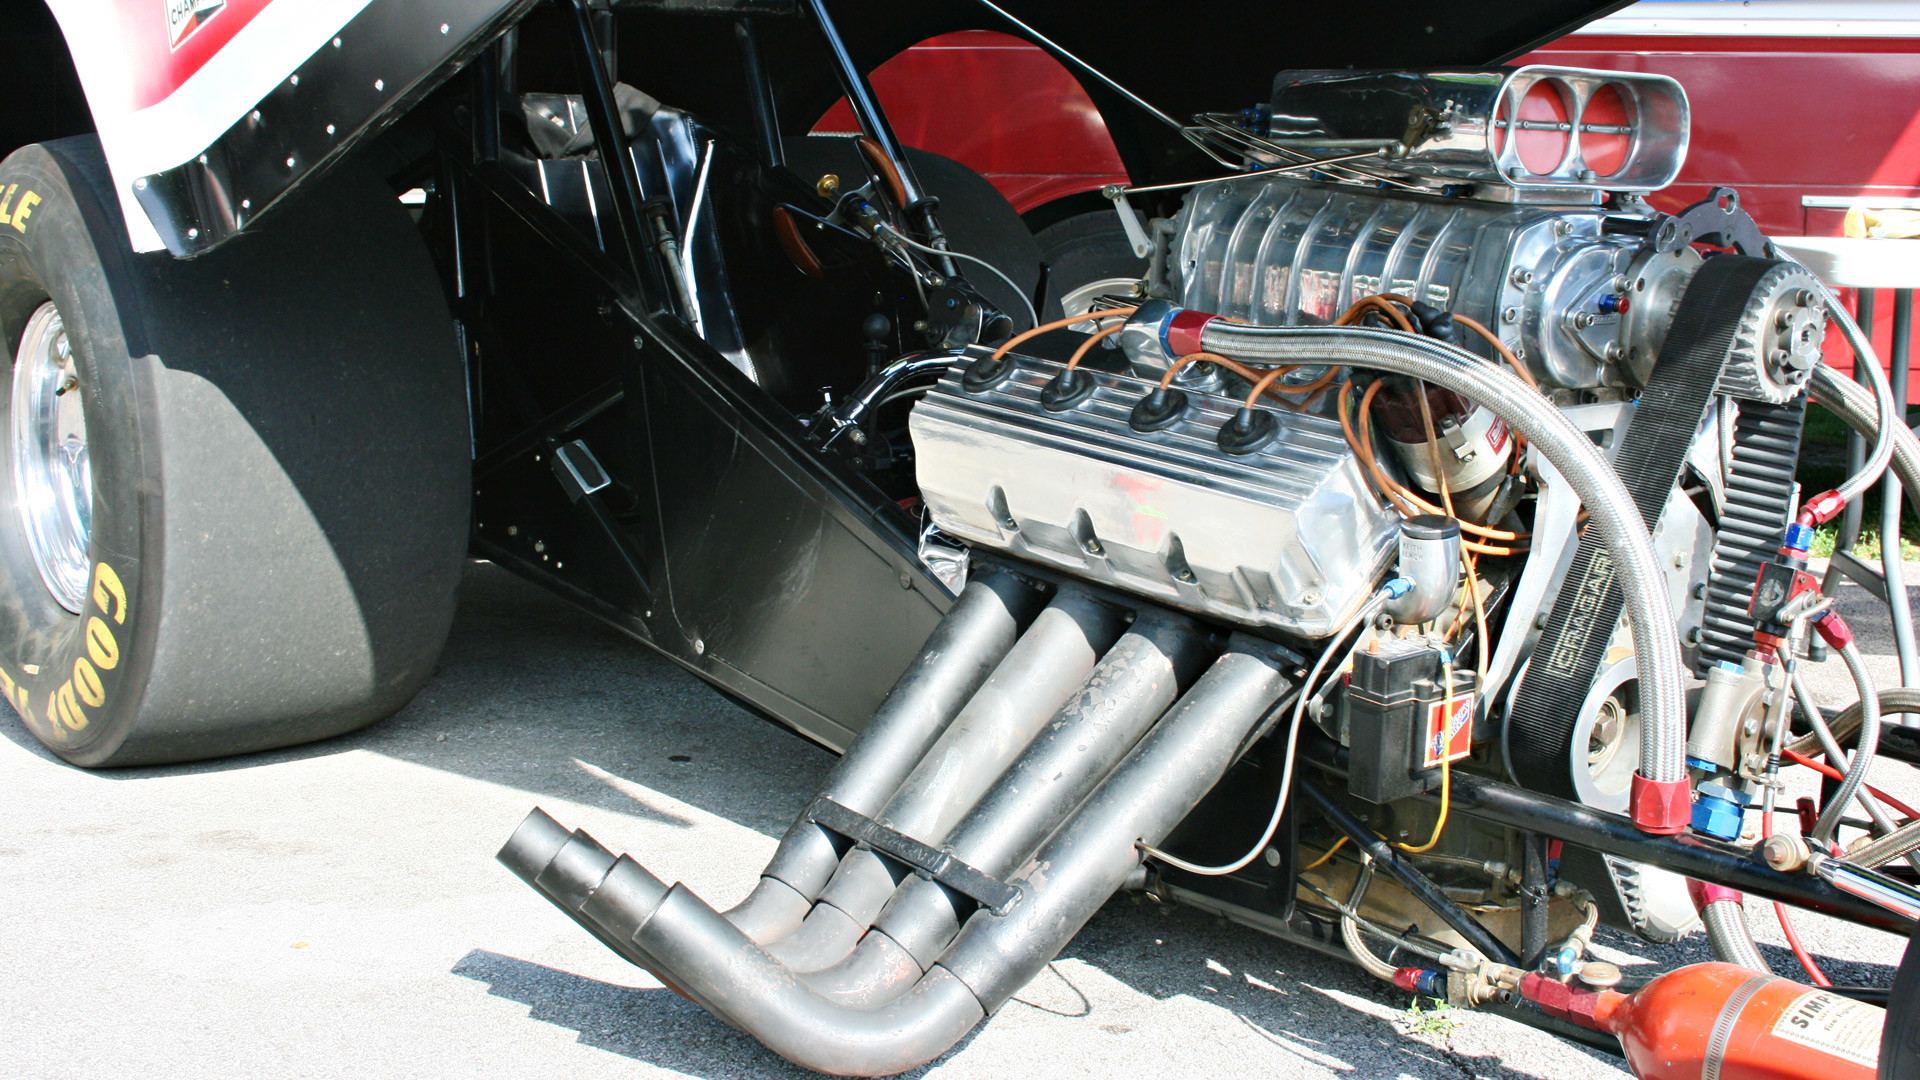 Res: 1920x1080, NHRA drag racing race hot rod funny-car funny engine f wallpaper |   | 143638 | WallpaperUP